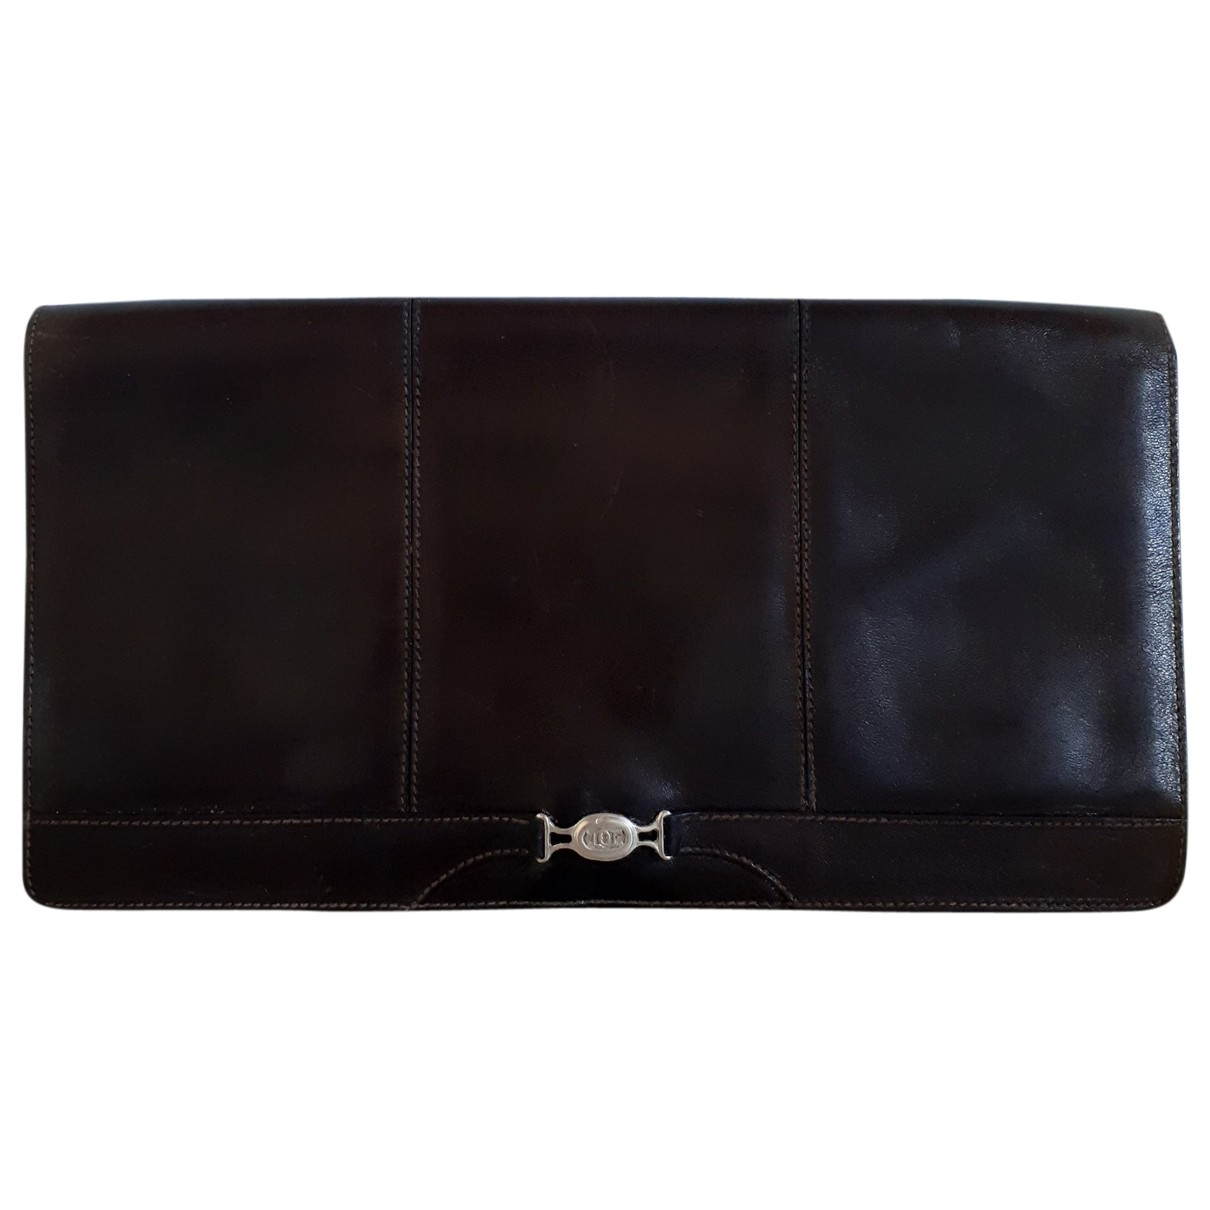 Etienne Aigner N Brown Leather Clutch bag for Women N